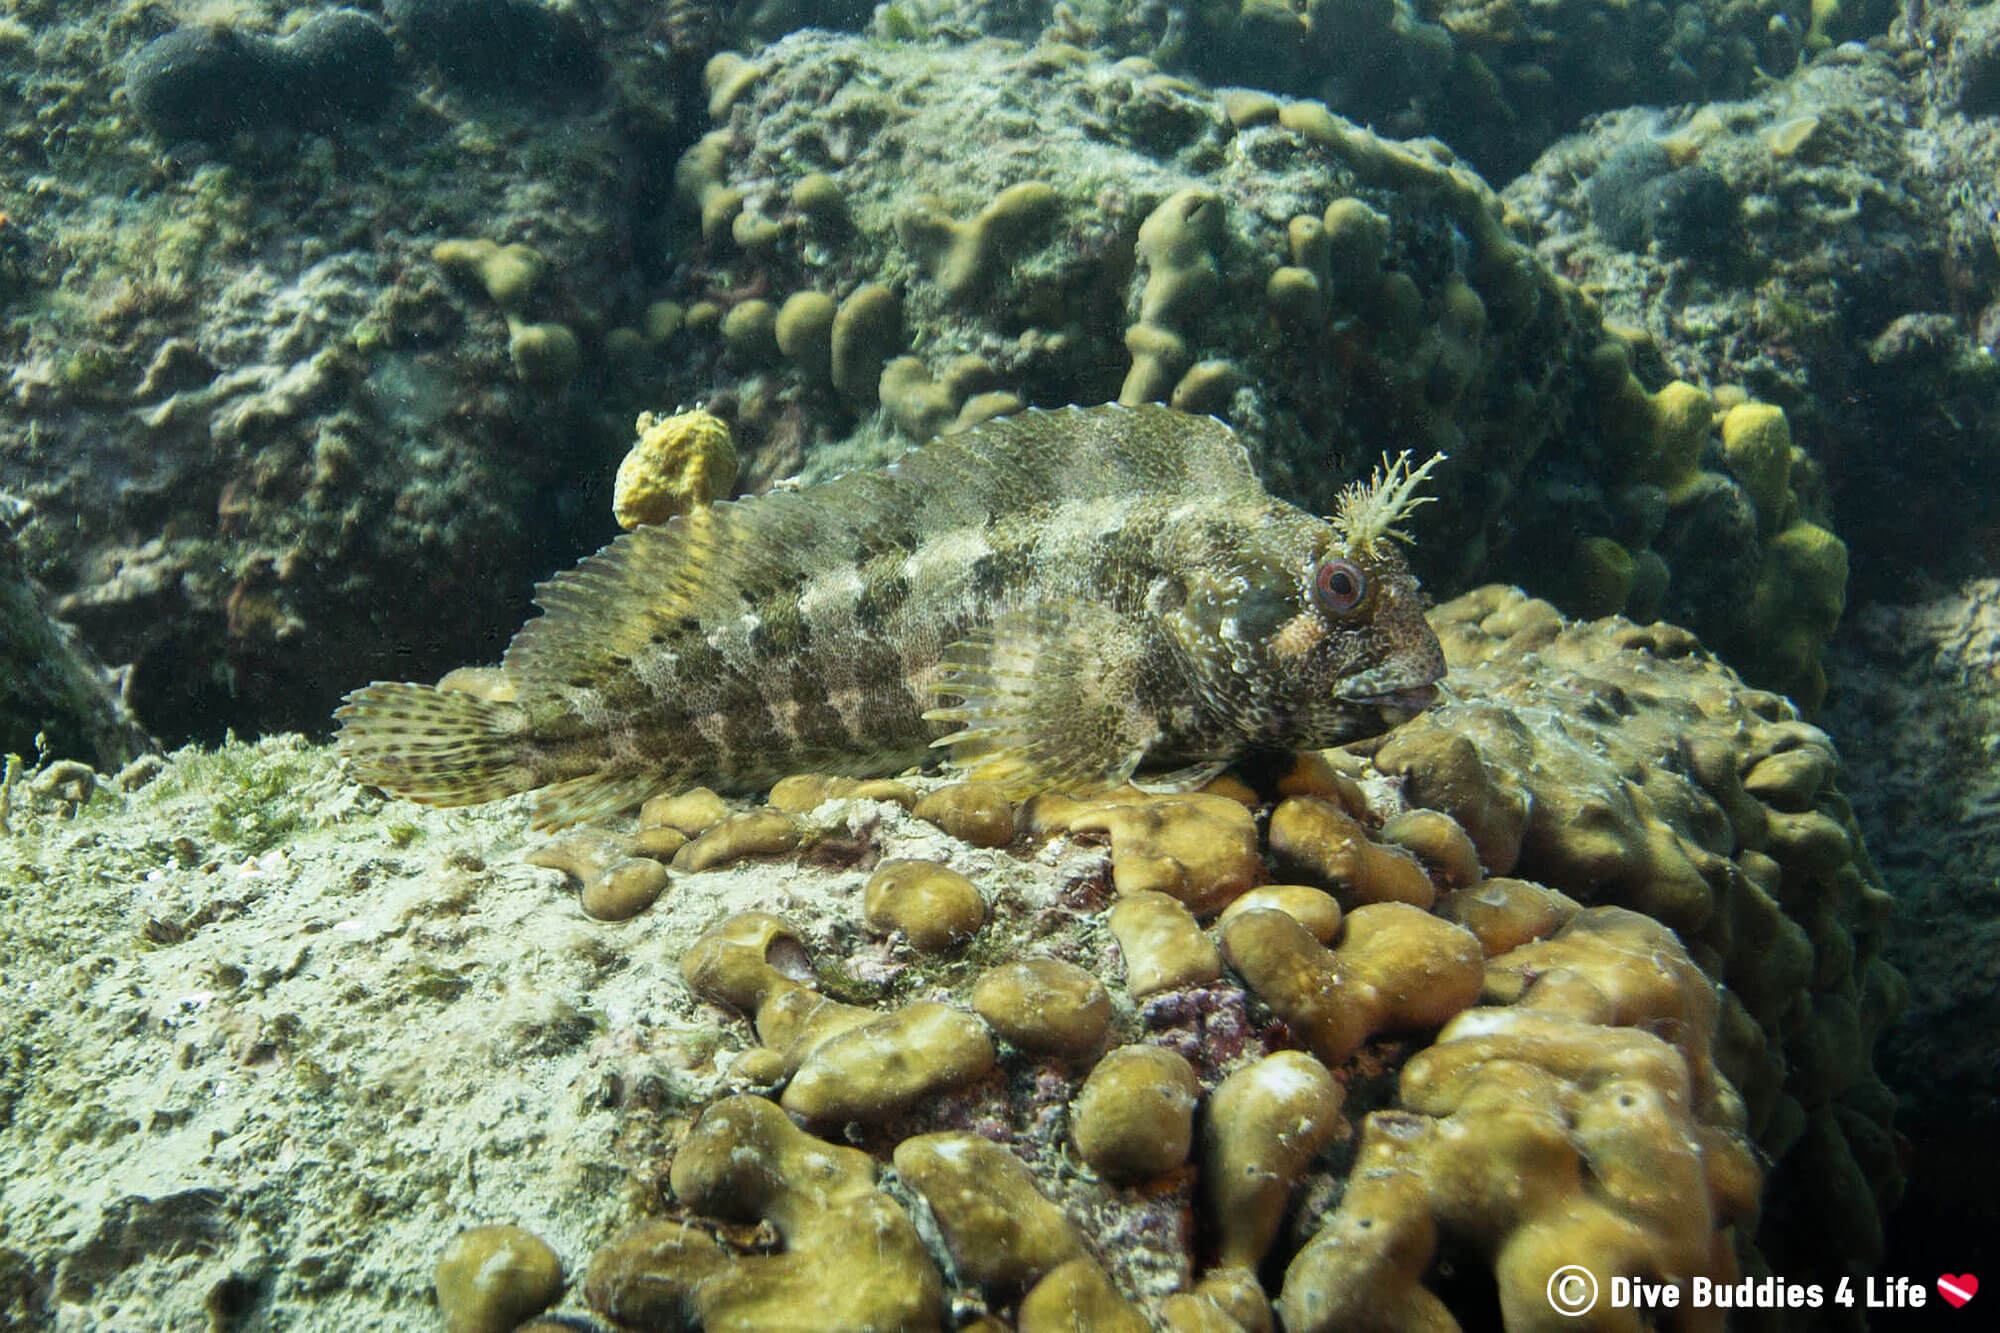 Scuba Diving Piran Slovenia And Finding A Species Of Blenny